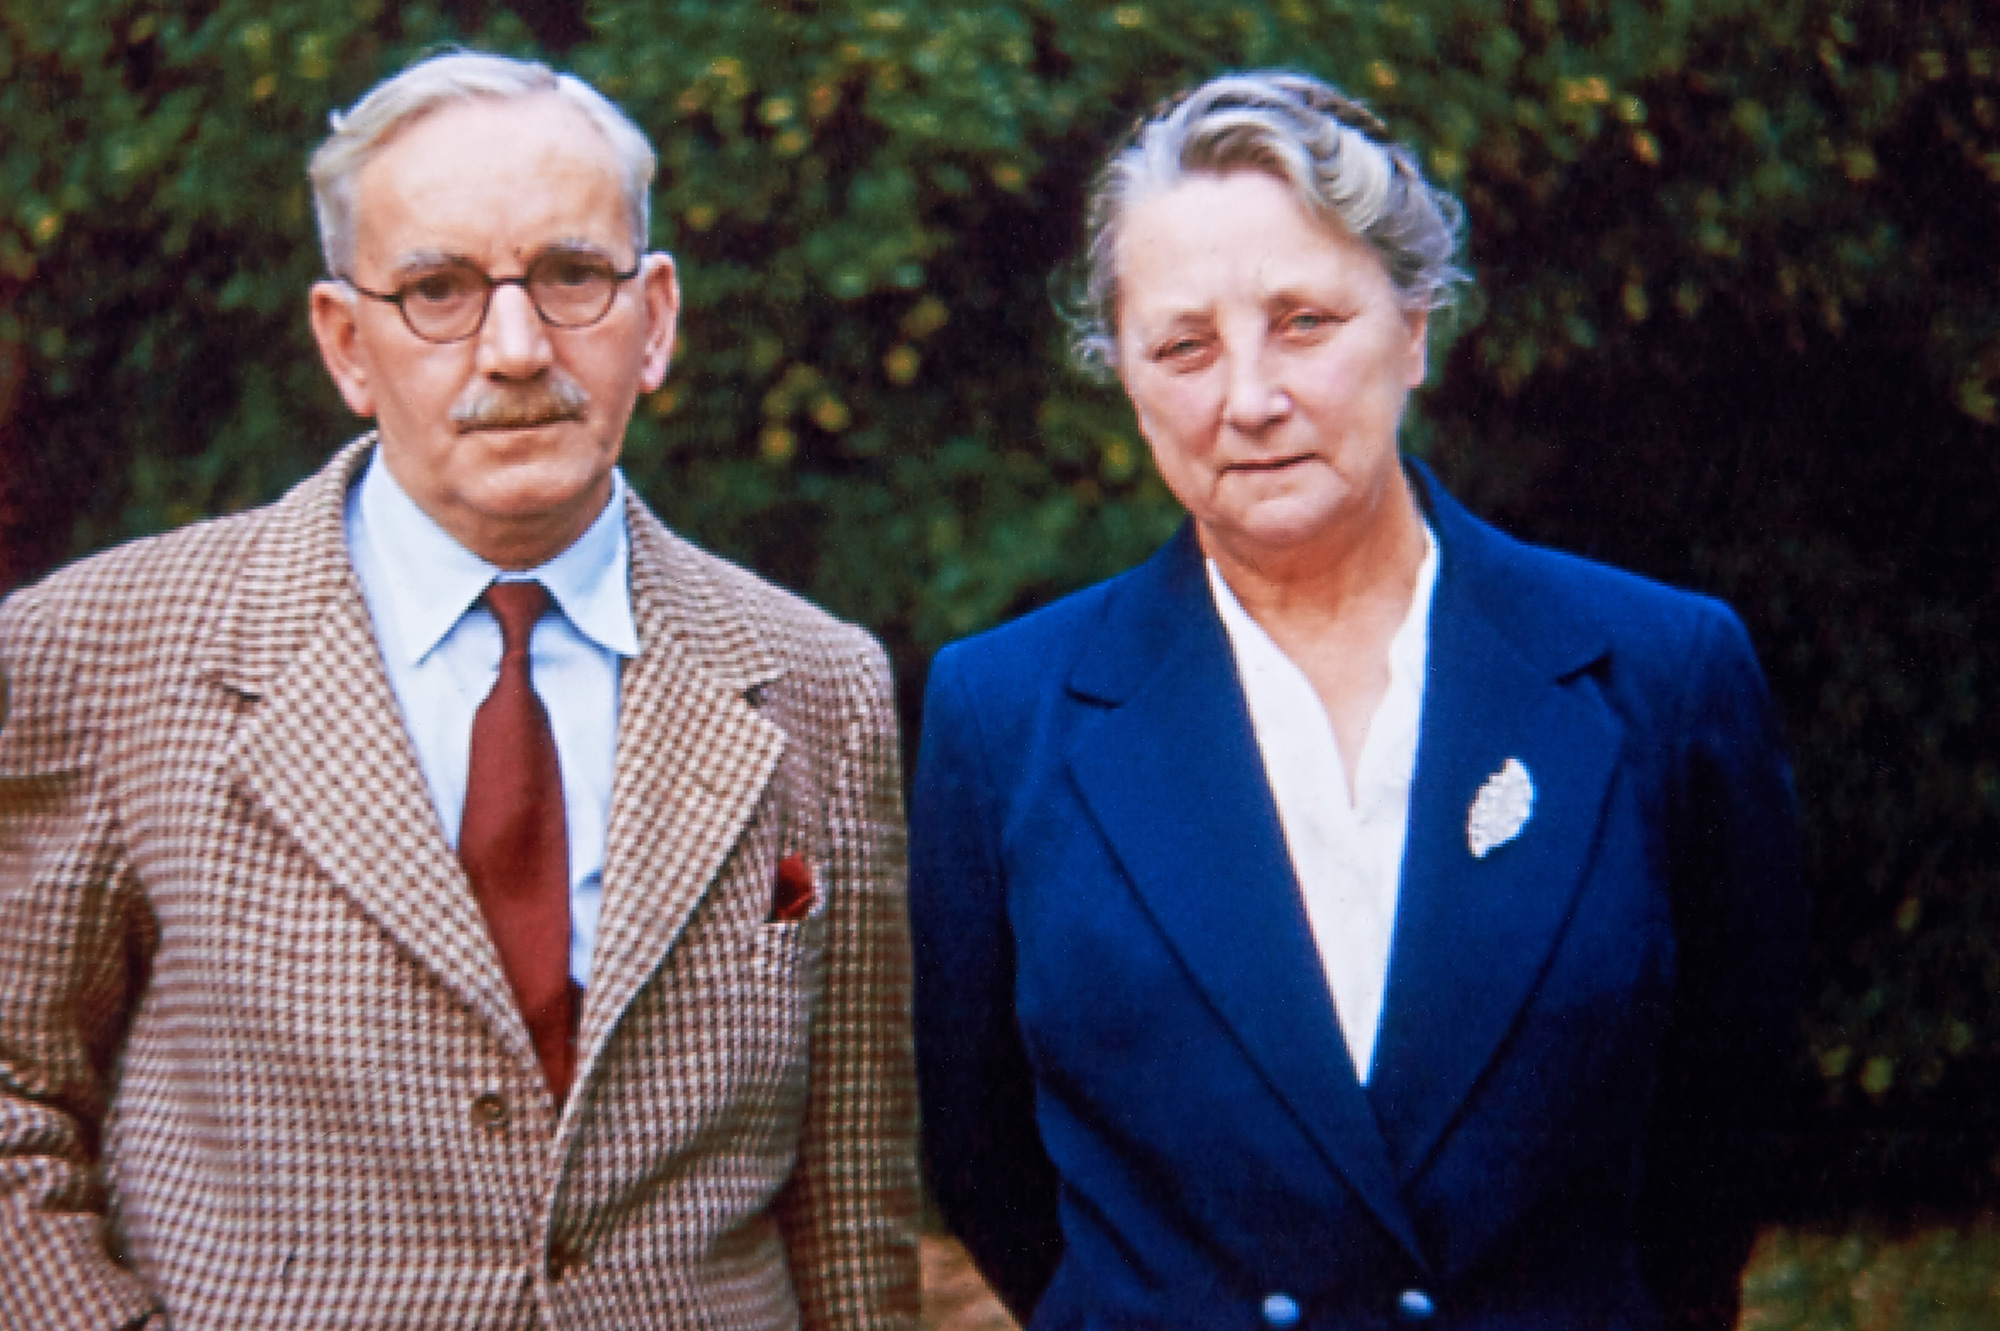 James Edward and Jessie Parkinson, the original owners of the school